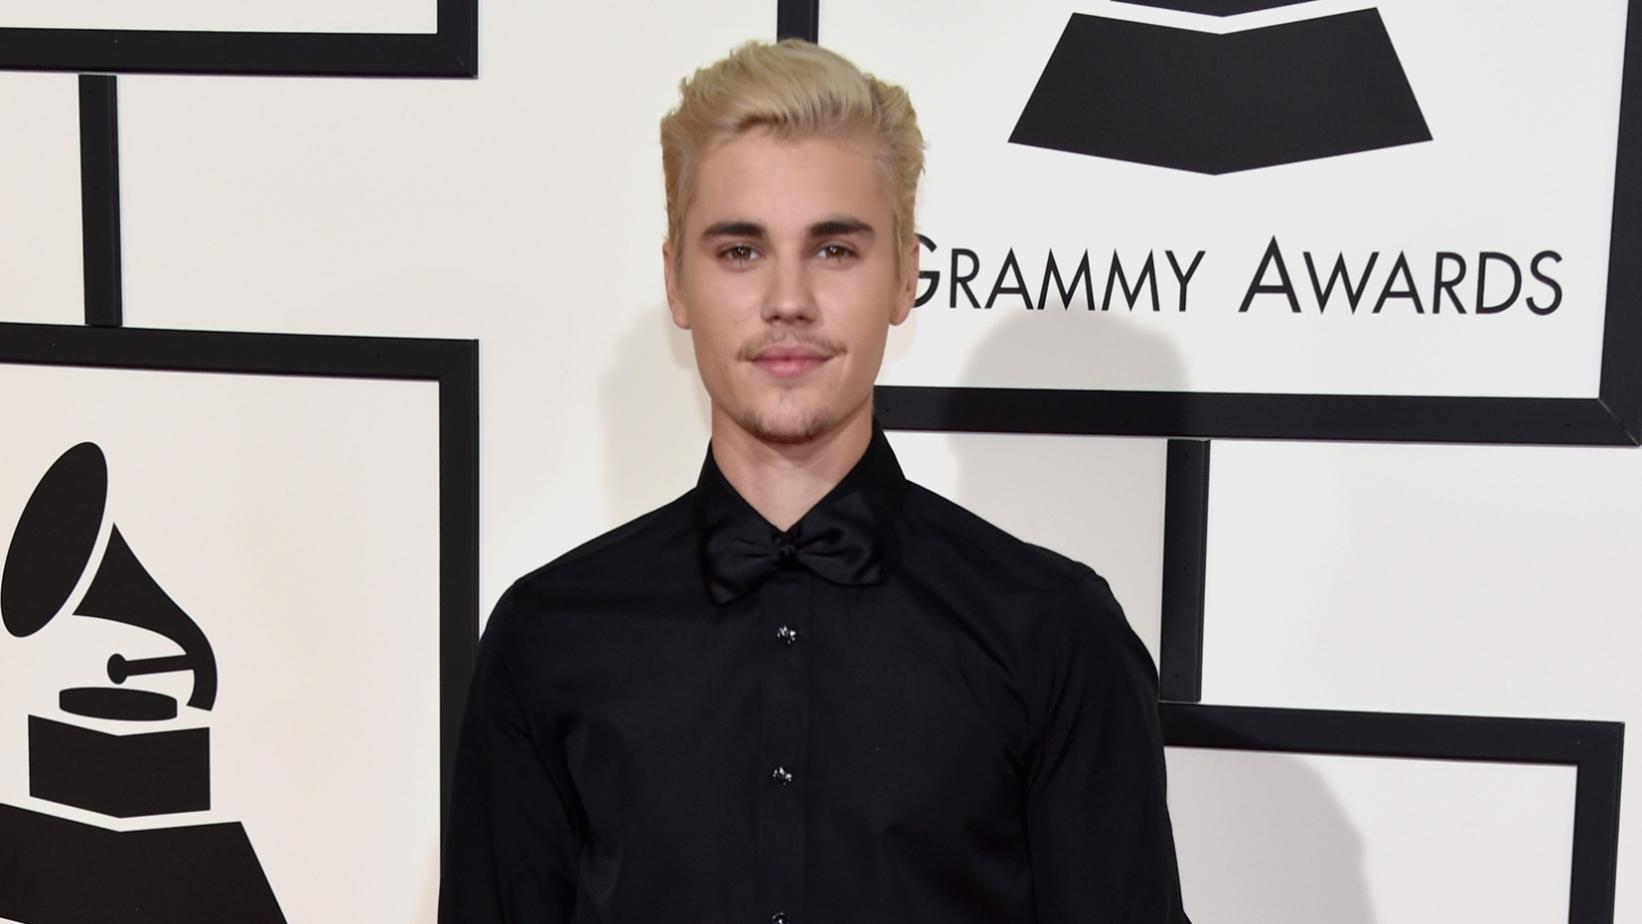 Justin Bieber at the 58th GRAMMY Awards